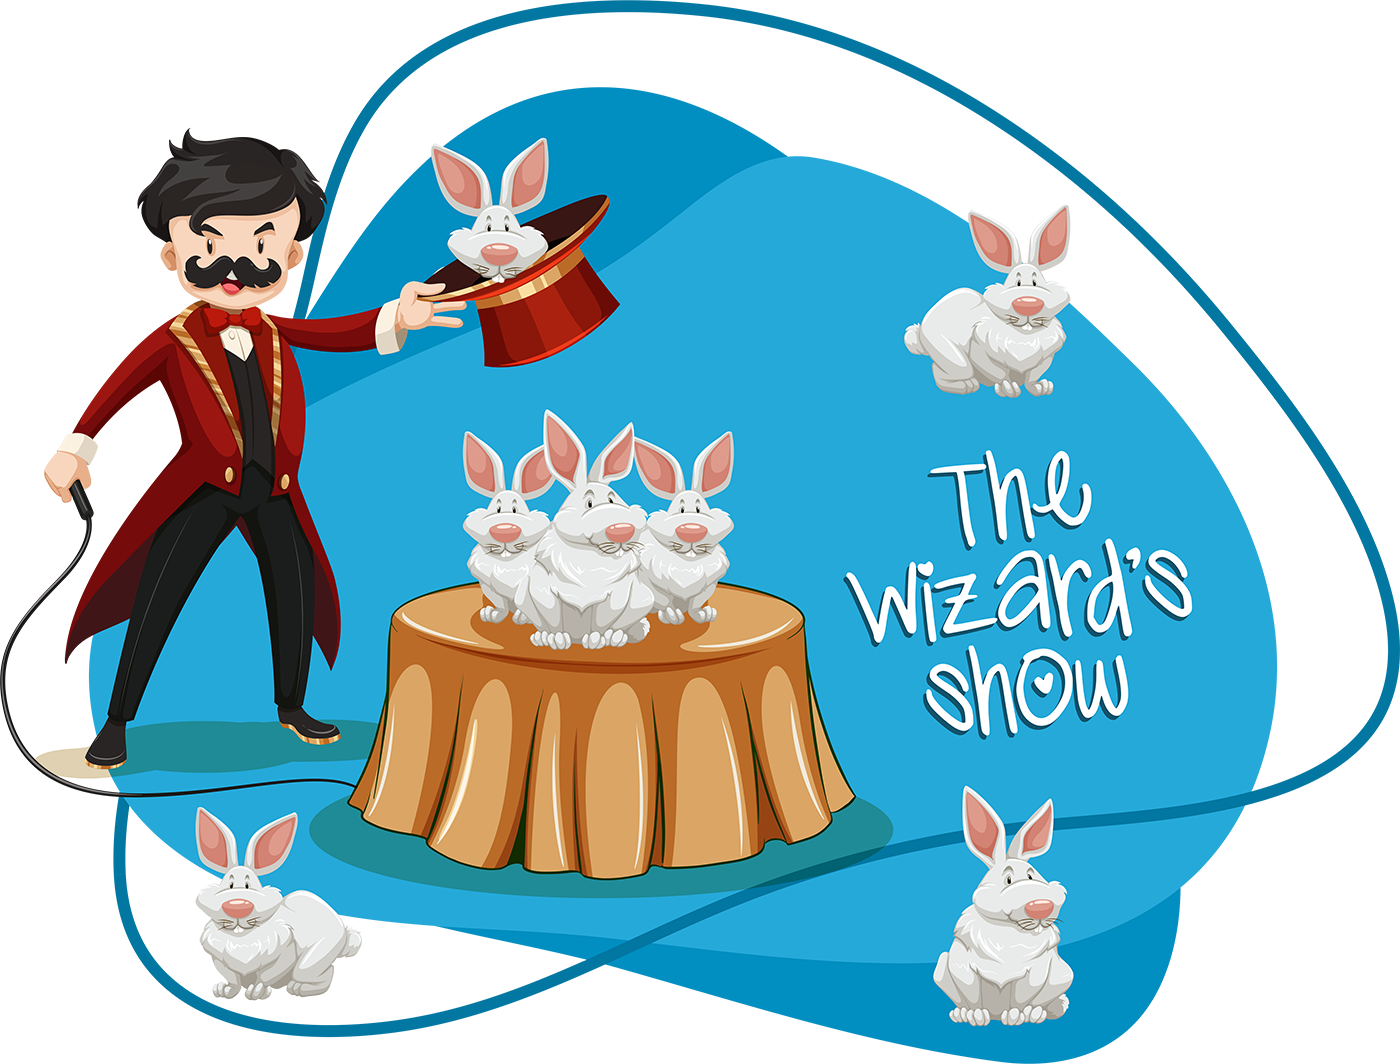 The Wizard's show